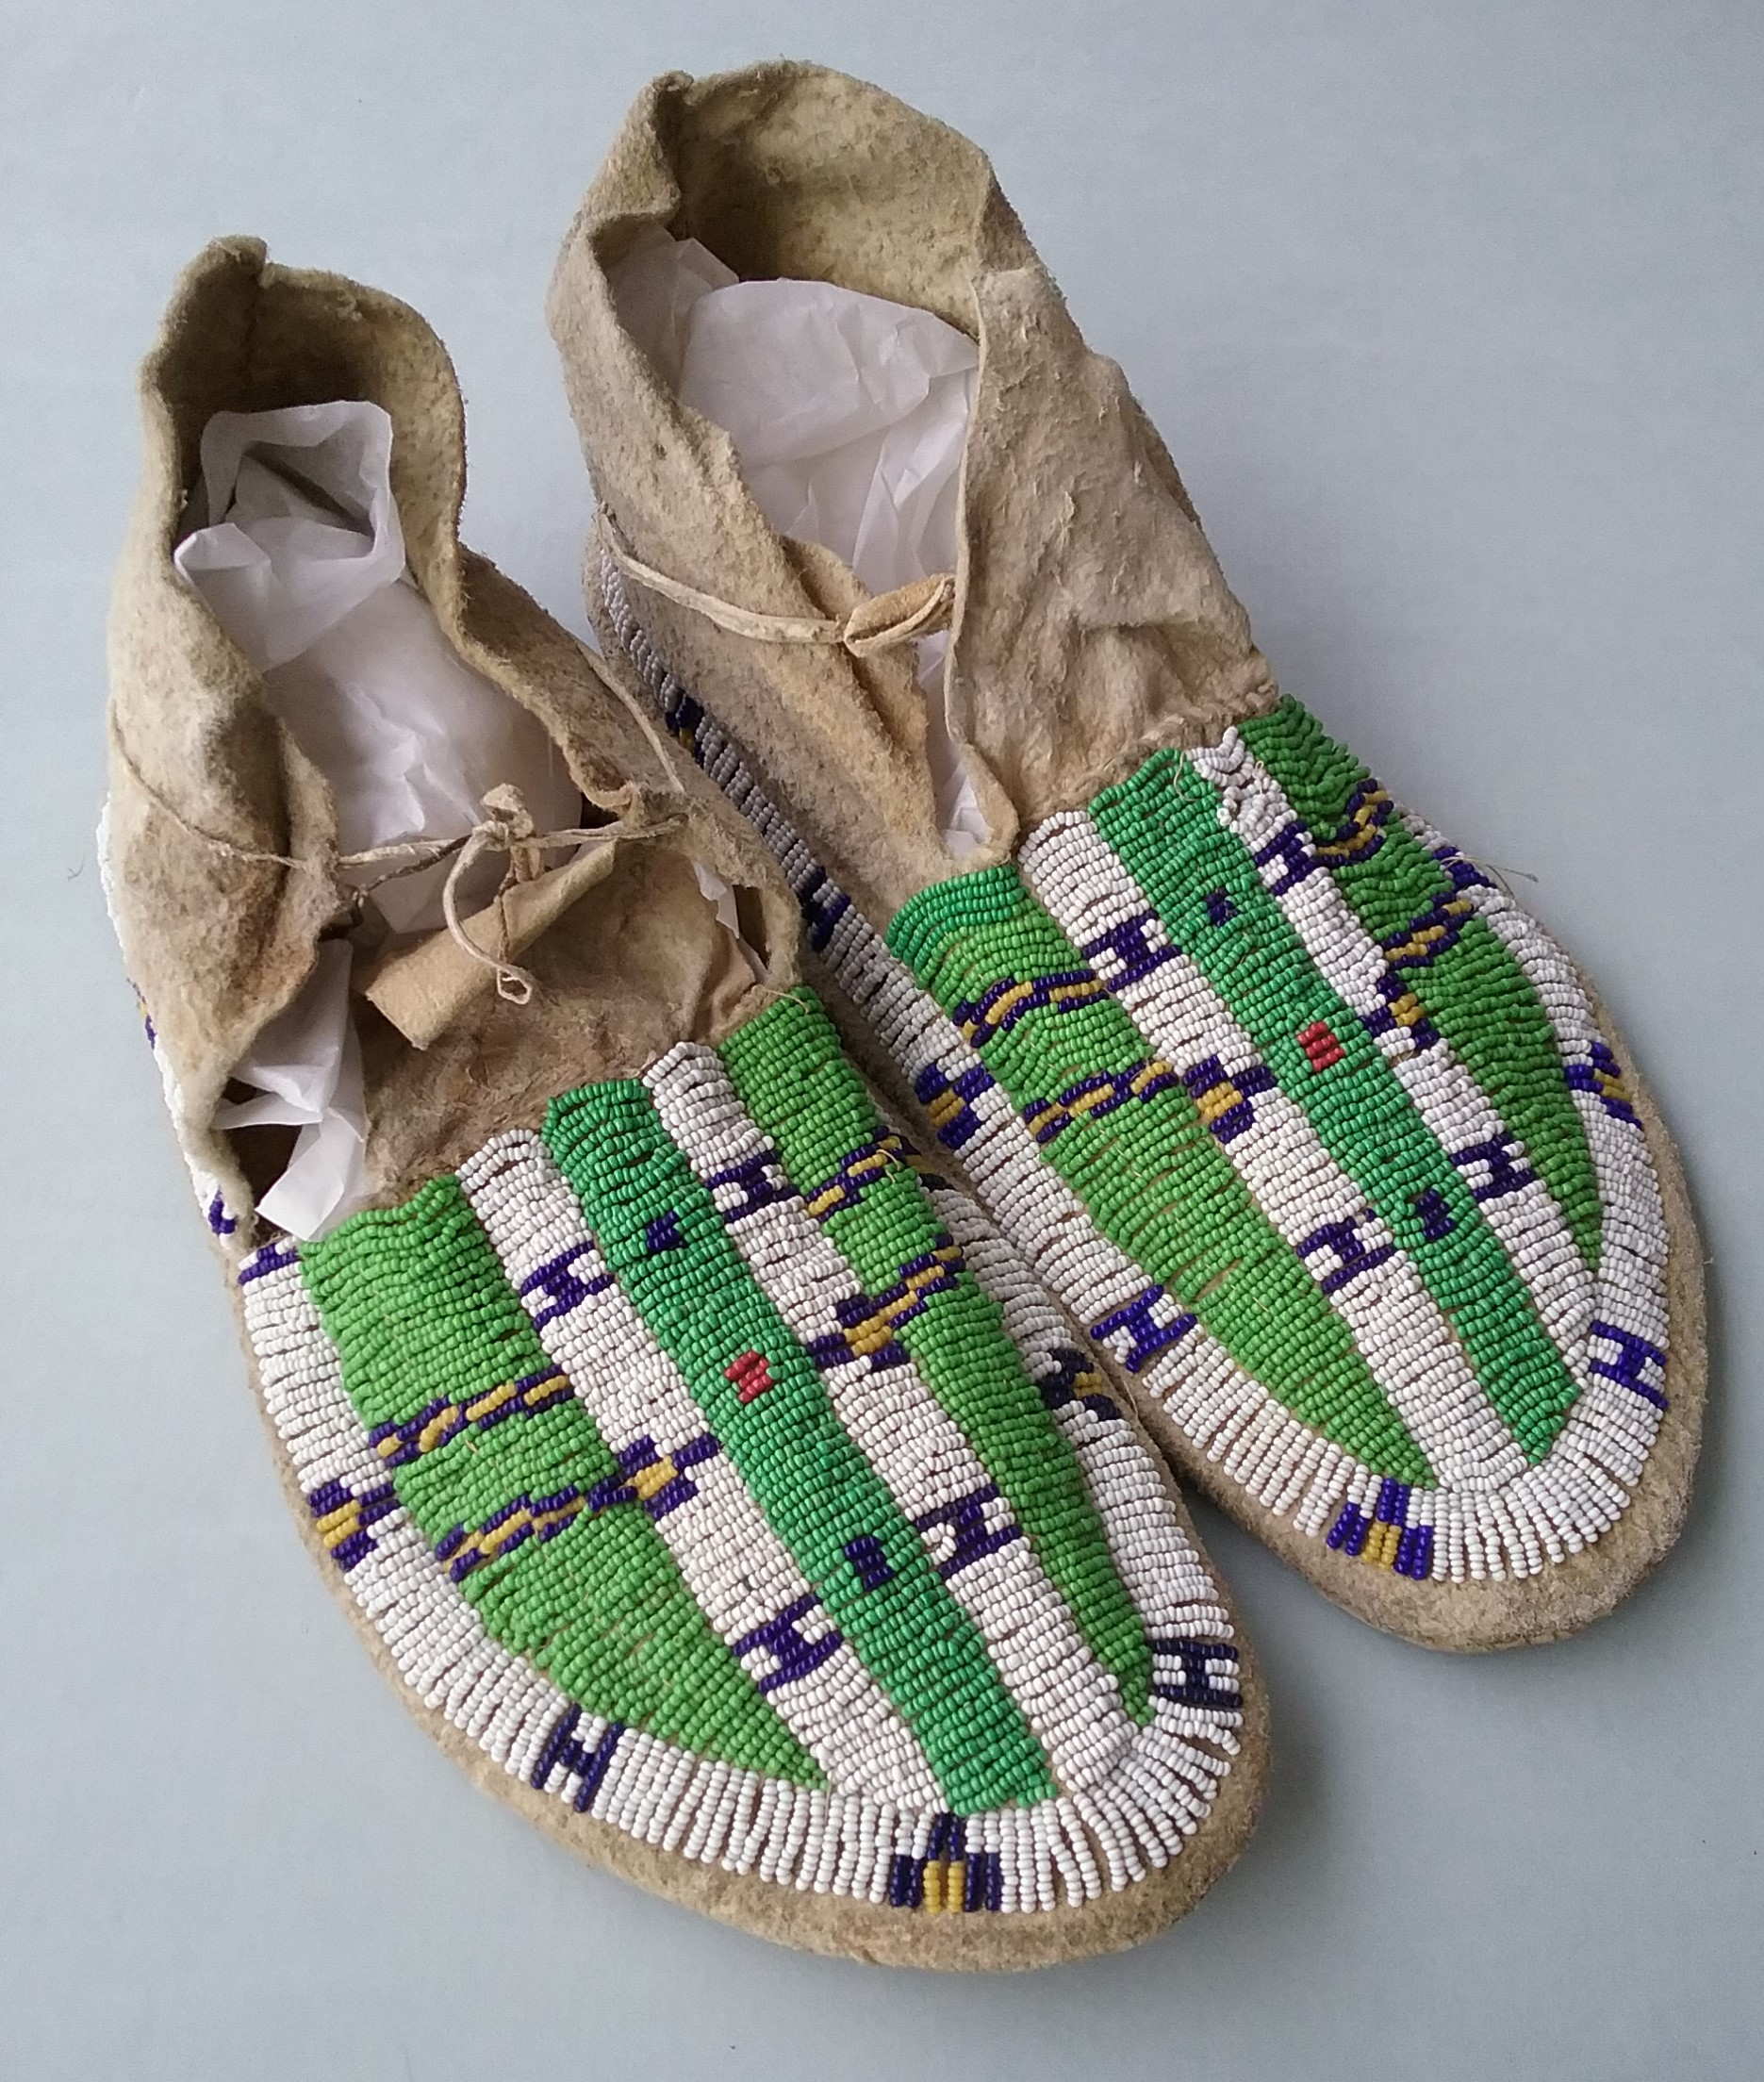 Native Moccasins: This pair of Native moccasins came to the Morrison County Historical Society in 1945. They are leather and feature seed beads spot-stitch appliqued into geometric patterns. Tribal affiliation and artist unknown. Donated by Mike Schomer. MCHS collections, #1945.4.